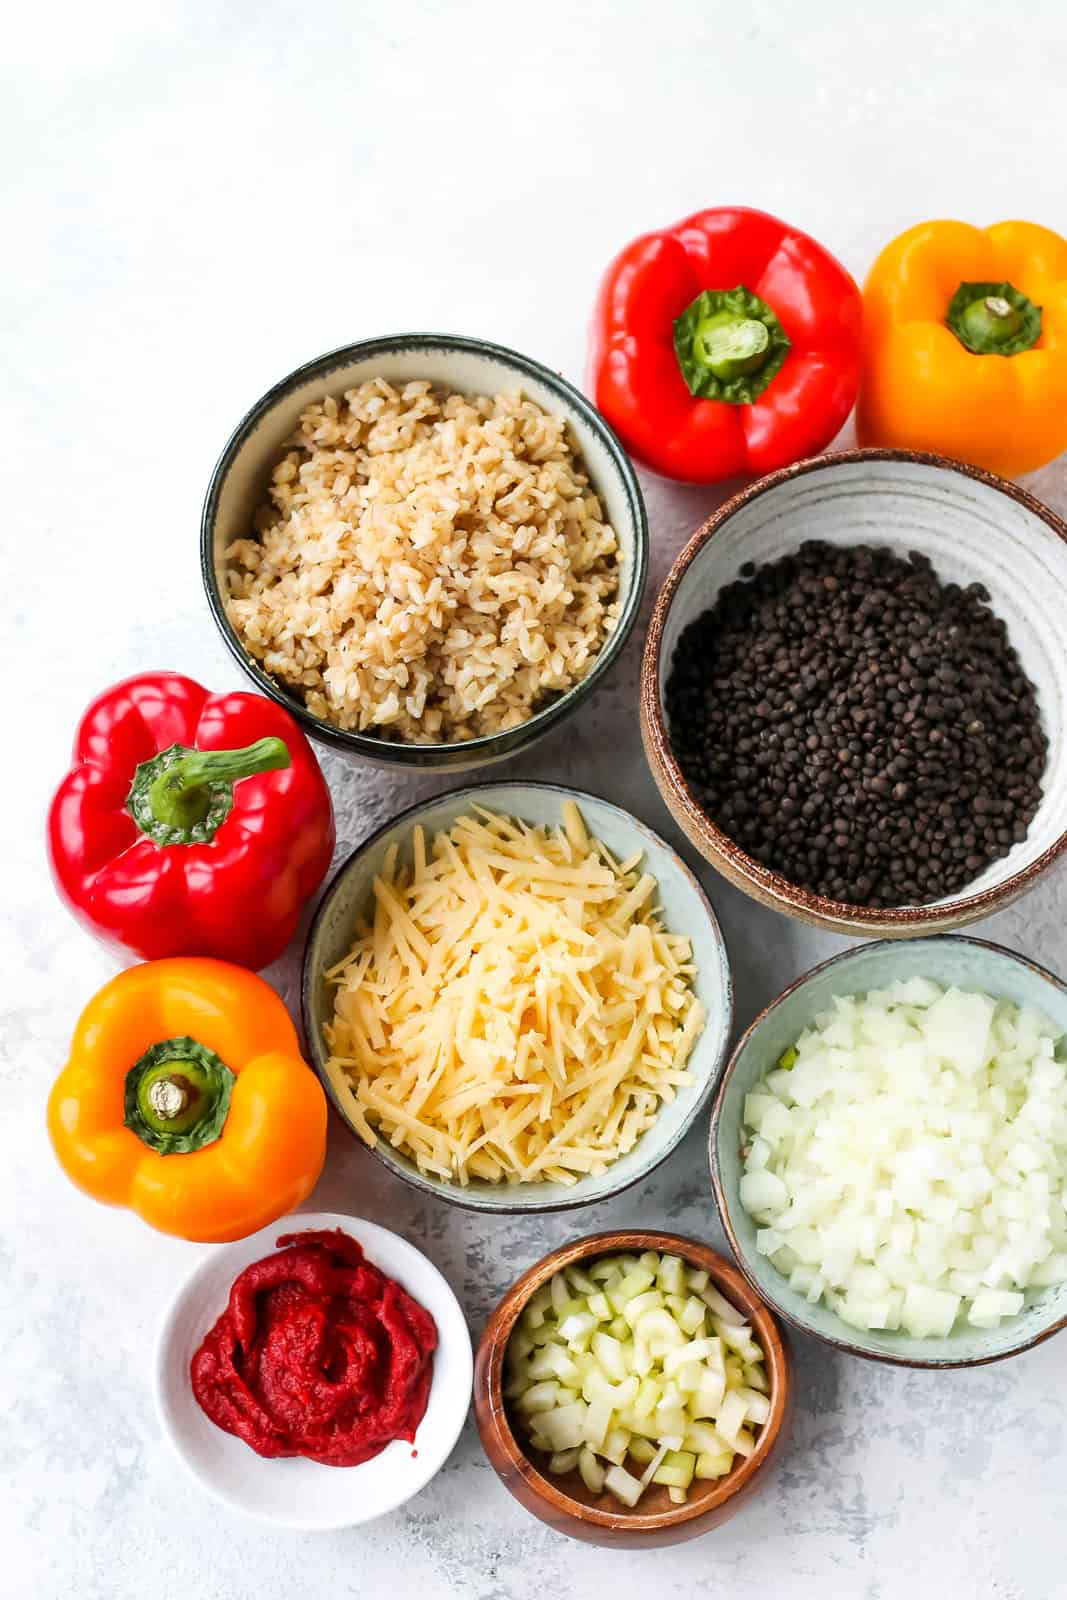 red and yellow peppers, brown rice, black lentils, grated cheese, tomato paste, diced onion, and diced celery on a grey background